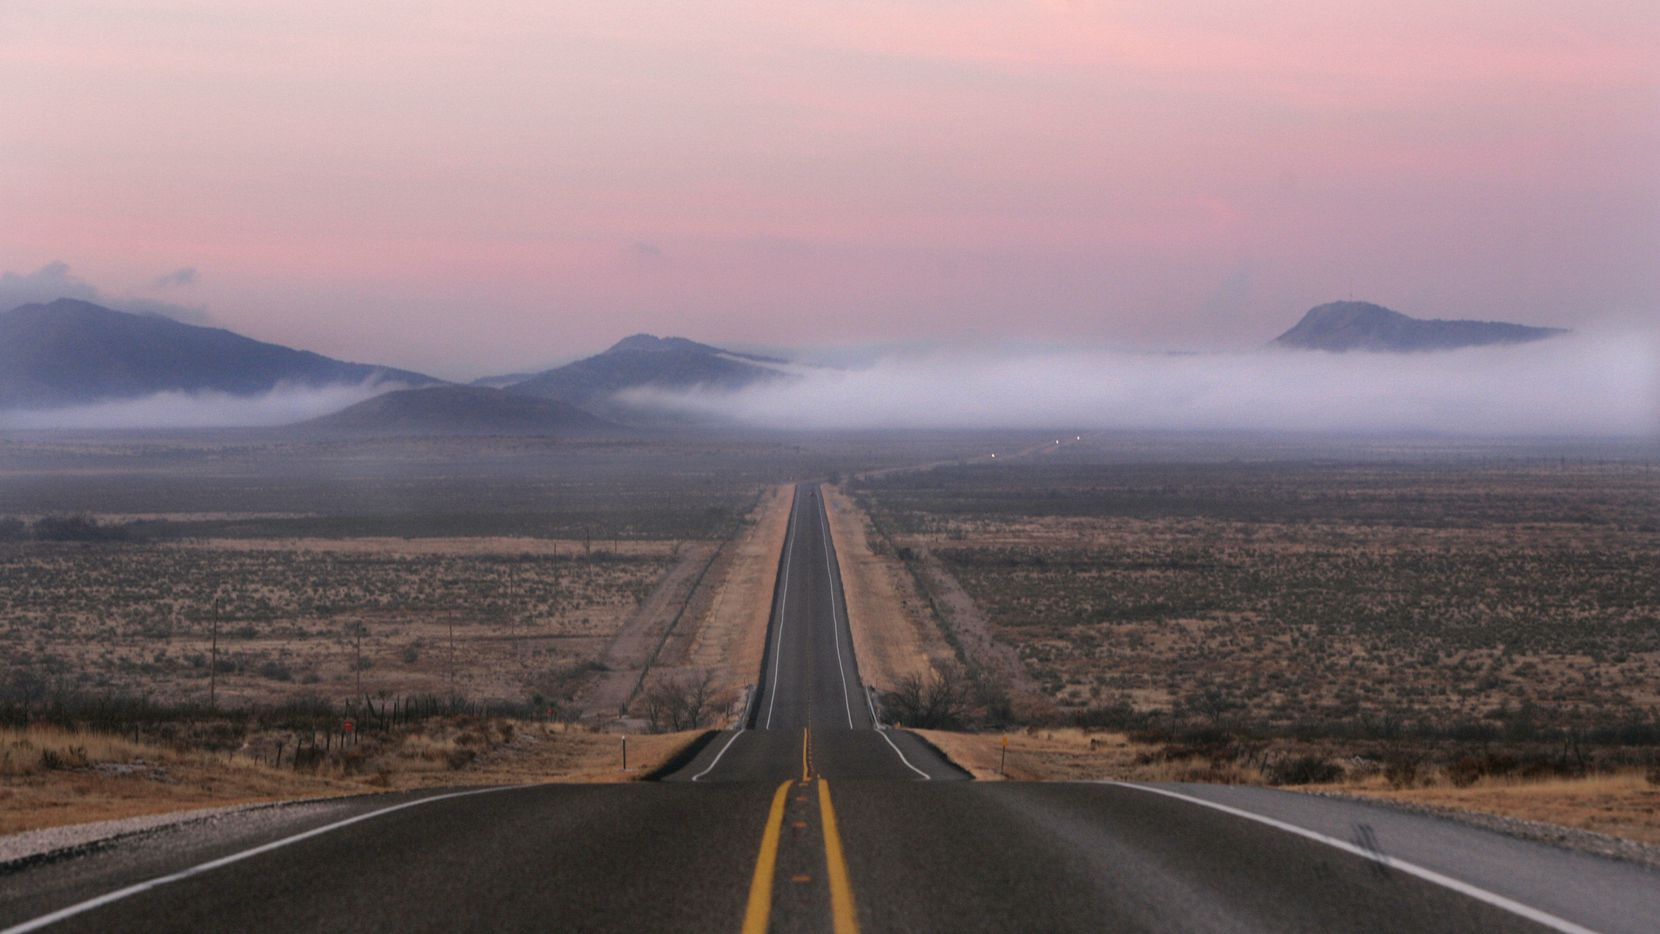 This file photo shows a pink sky and low-lying clouds on a highway just east of Alpine in far West Texas. Some pregnant women already travel an hour and a half or longer to reach the 25-bed Big Bend Regional Medical Center in Alpine, which serves a swath that extends southwest to the Mexican border and includes Big Bend National Park as well as the communities of Presidio and Candelaria.